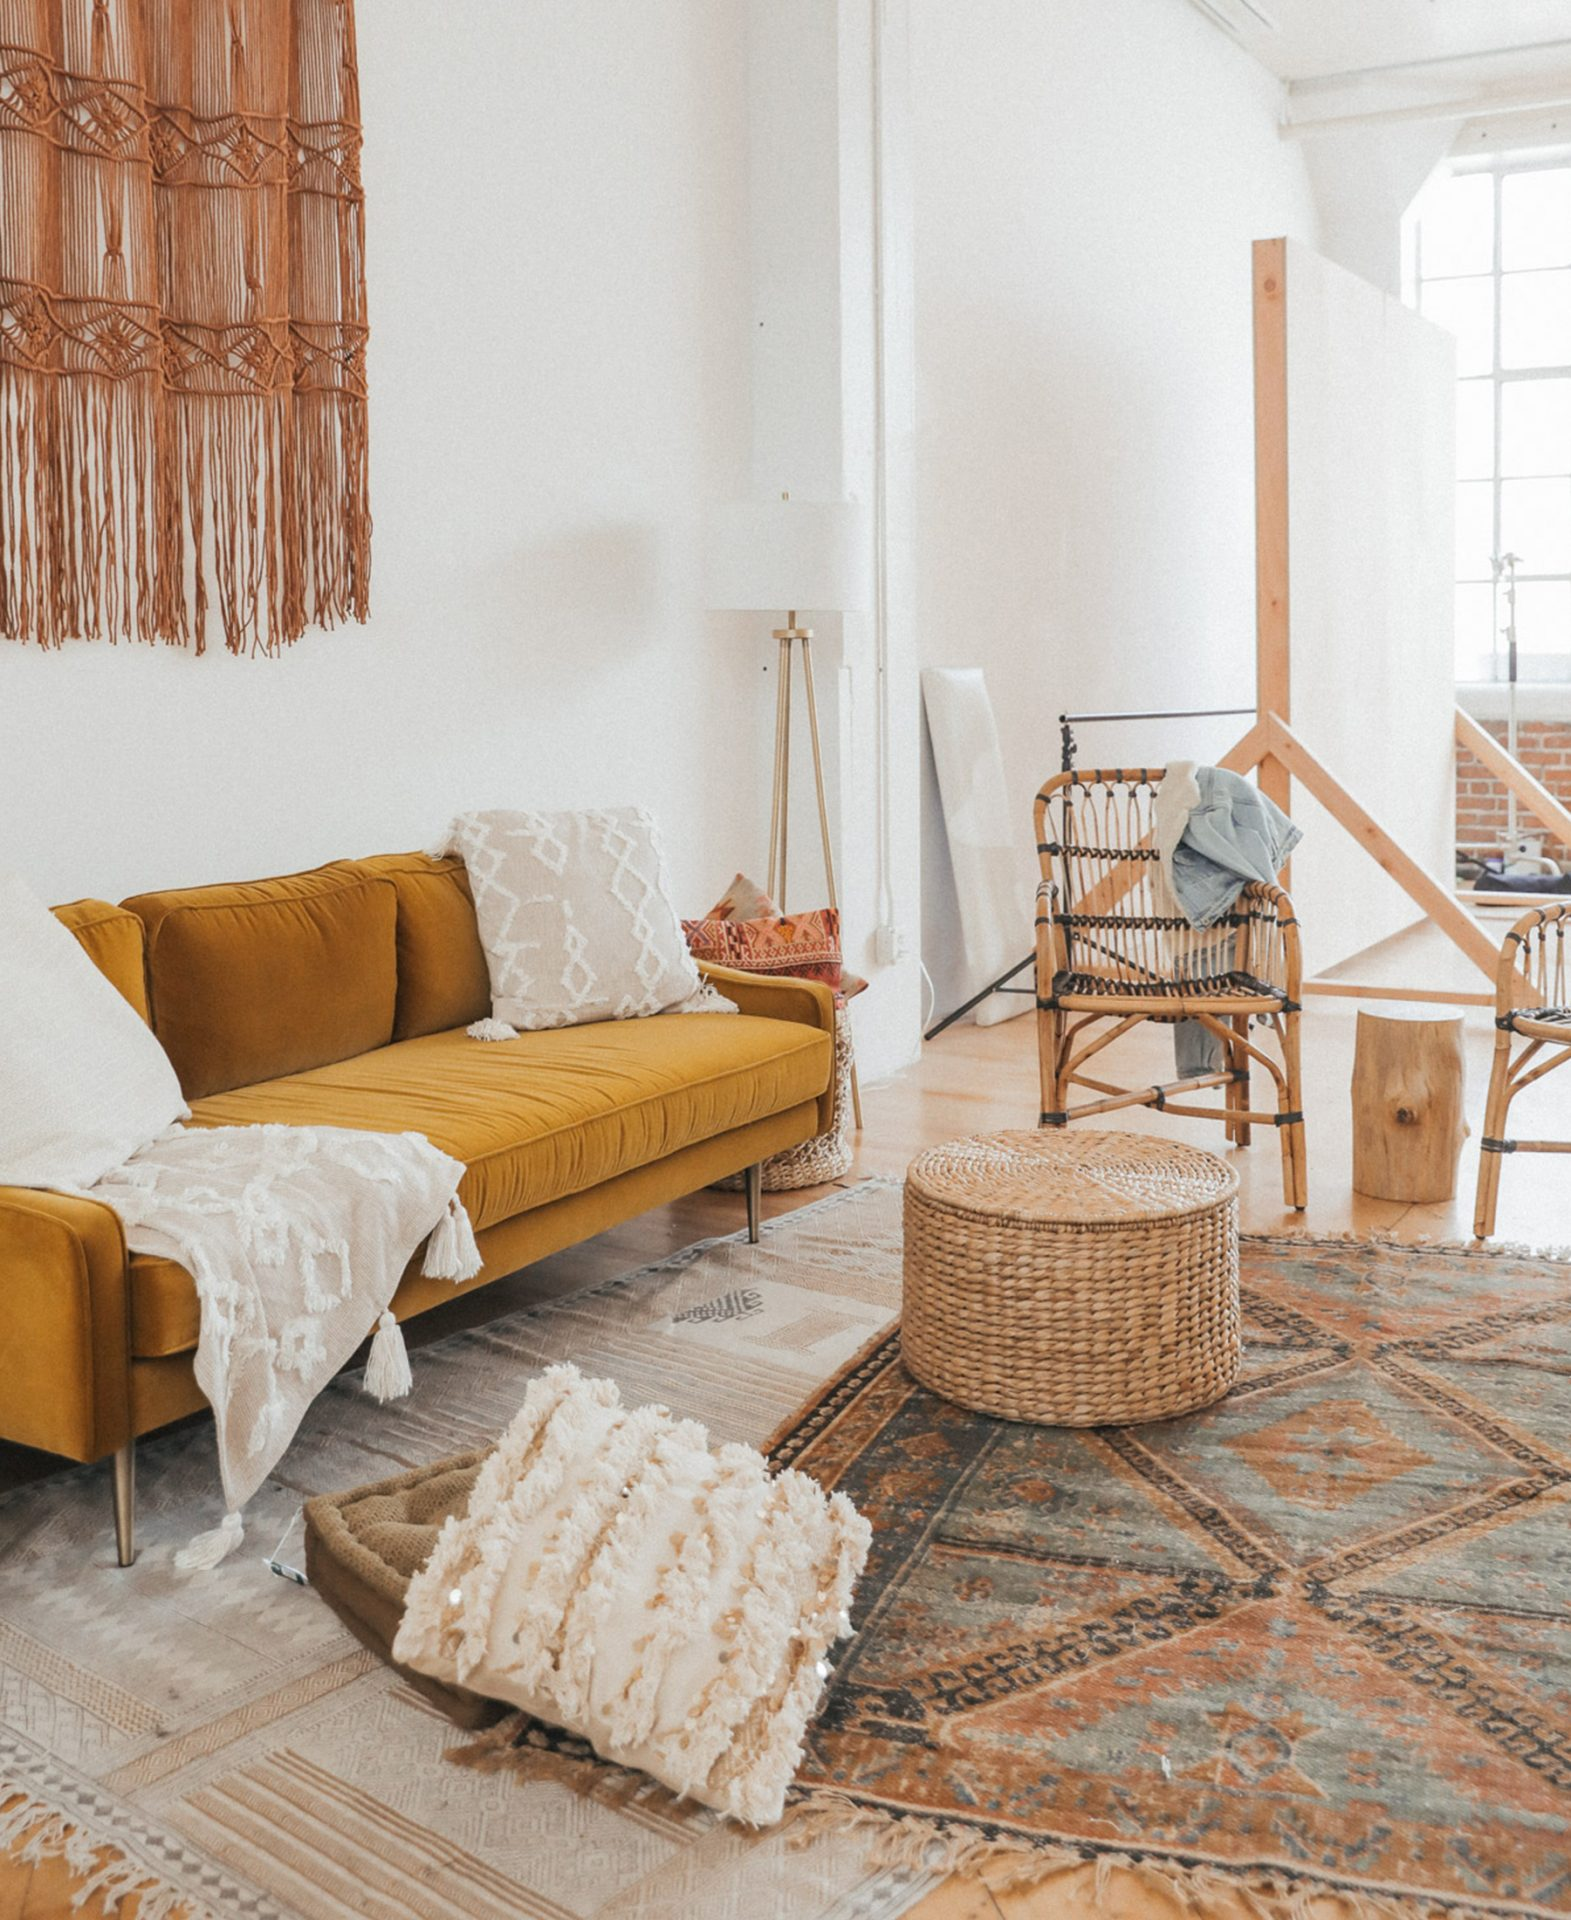 Blogger Advice From A Twenty Something's boho living space features a yellow velvet Article sofa. It's obvious she knows how to clean a velvet couch!